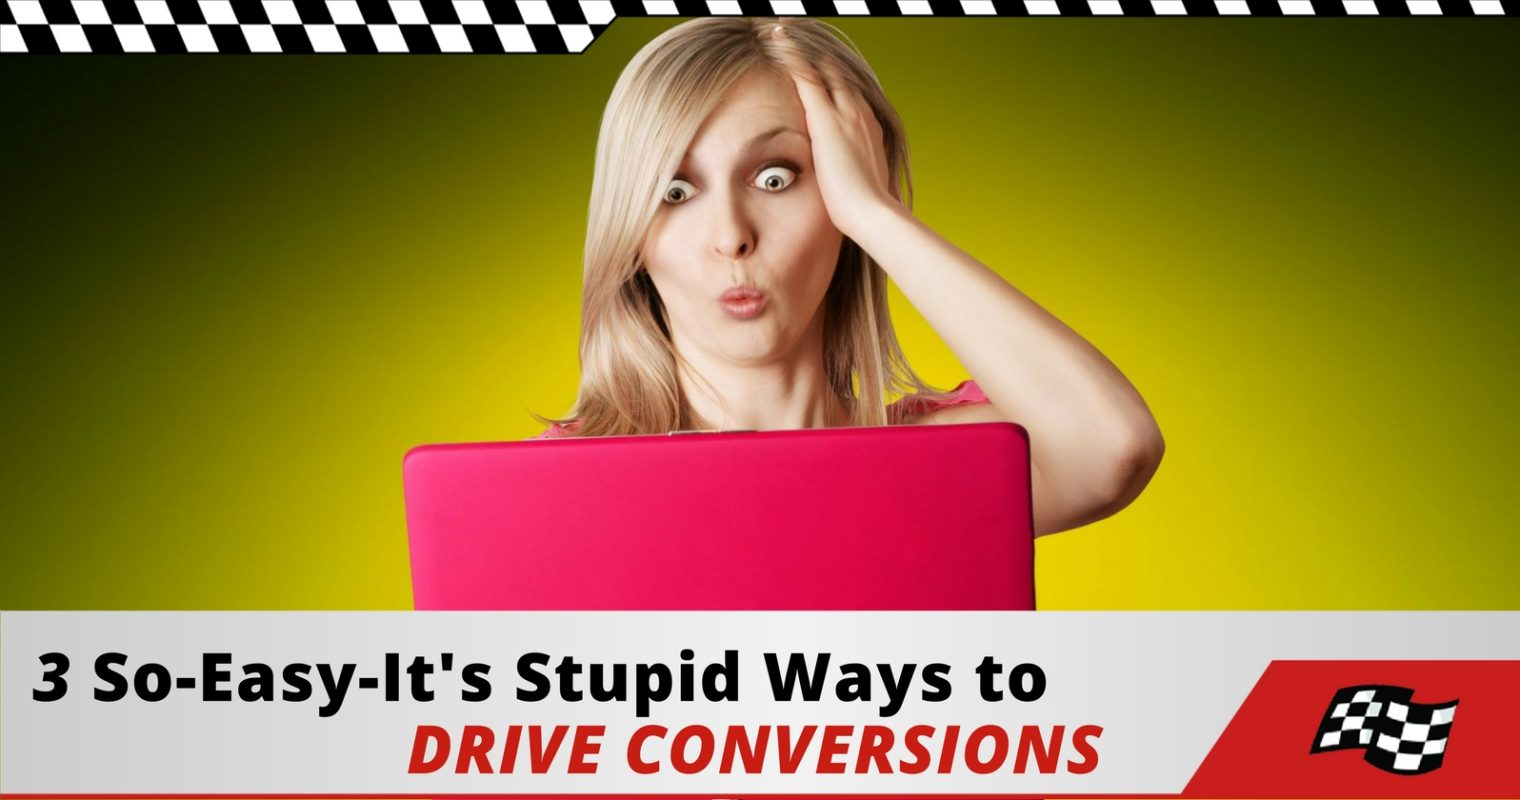 3 Stupid Easy Ways to Drive Conversions